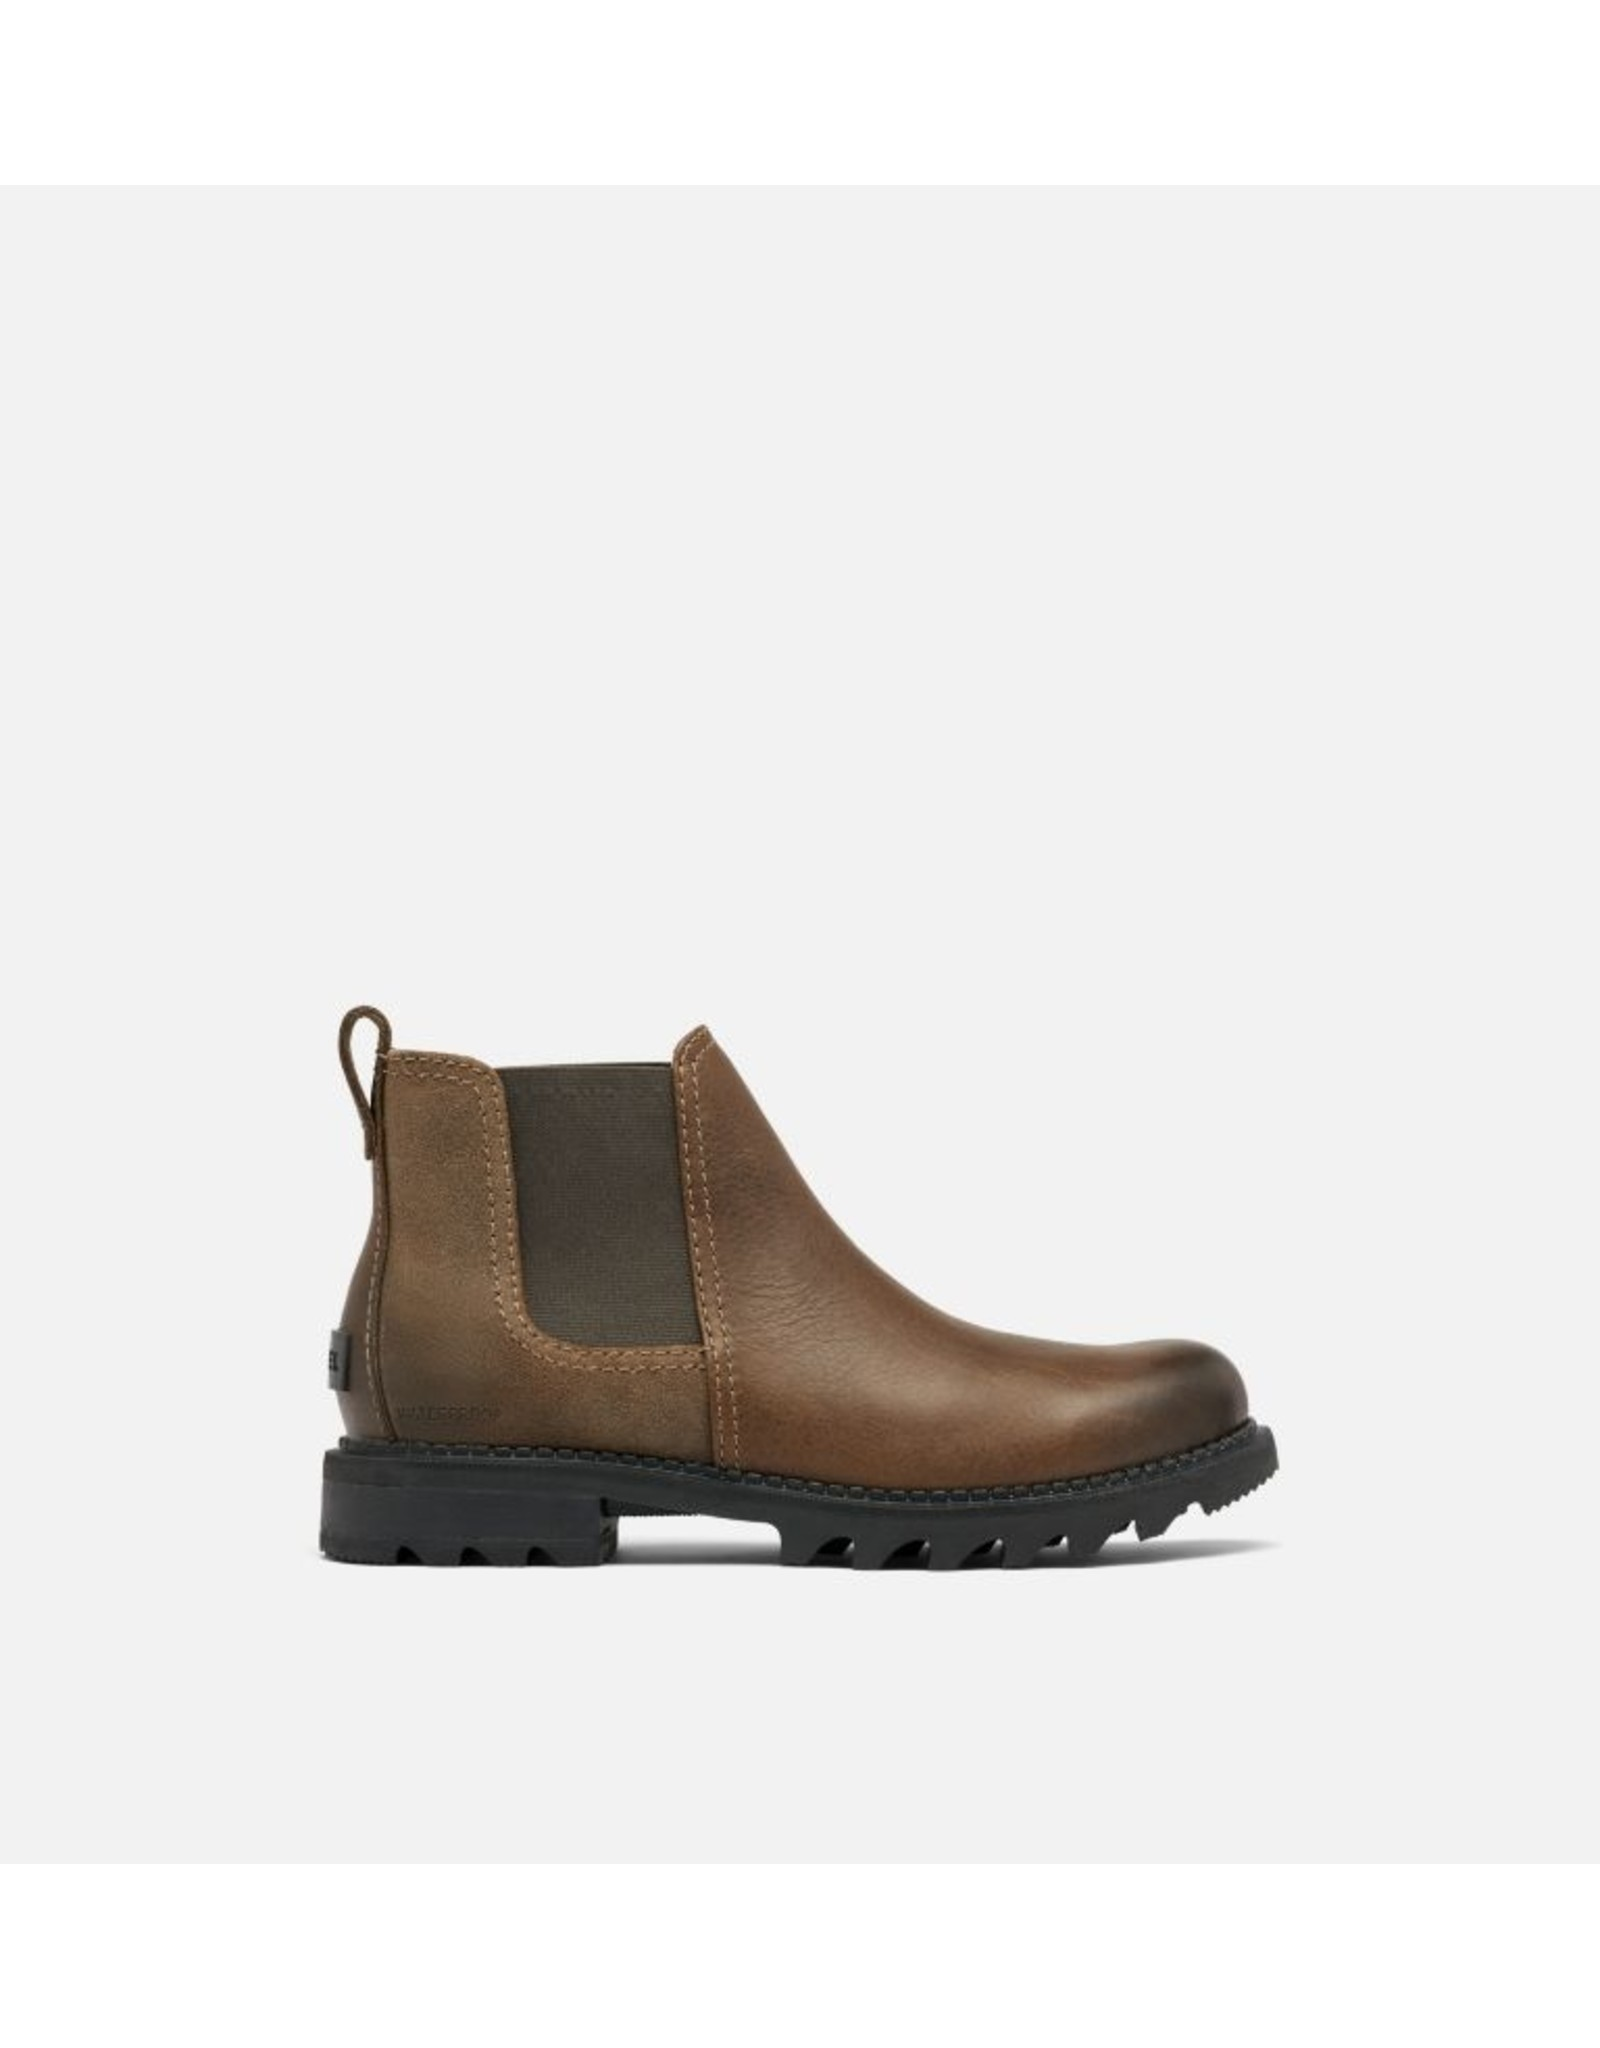 SOREL MEN'S MAD BRICK CHELSEA WATERPROOF-SADDLE